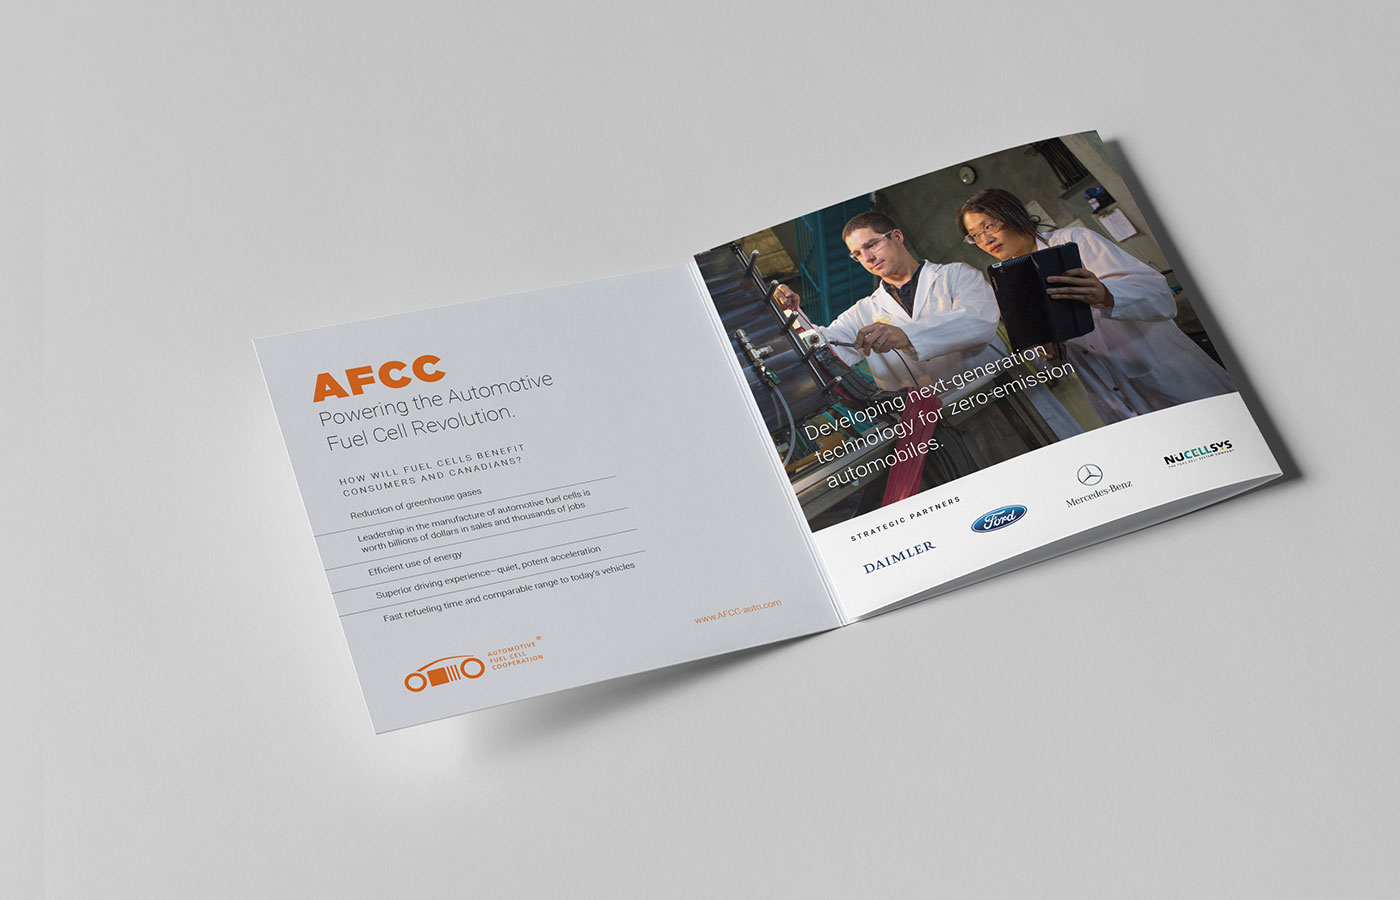 covetdesign_logo-design_branding_package-design_graphic-designer_vancouver_work_wide_afcc-3